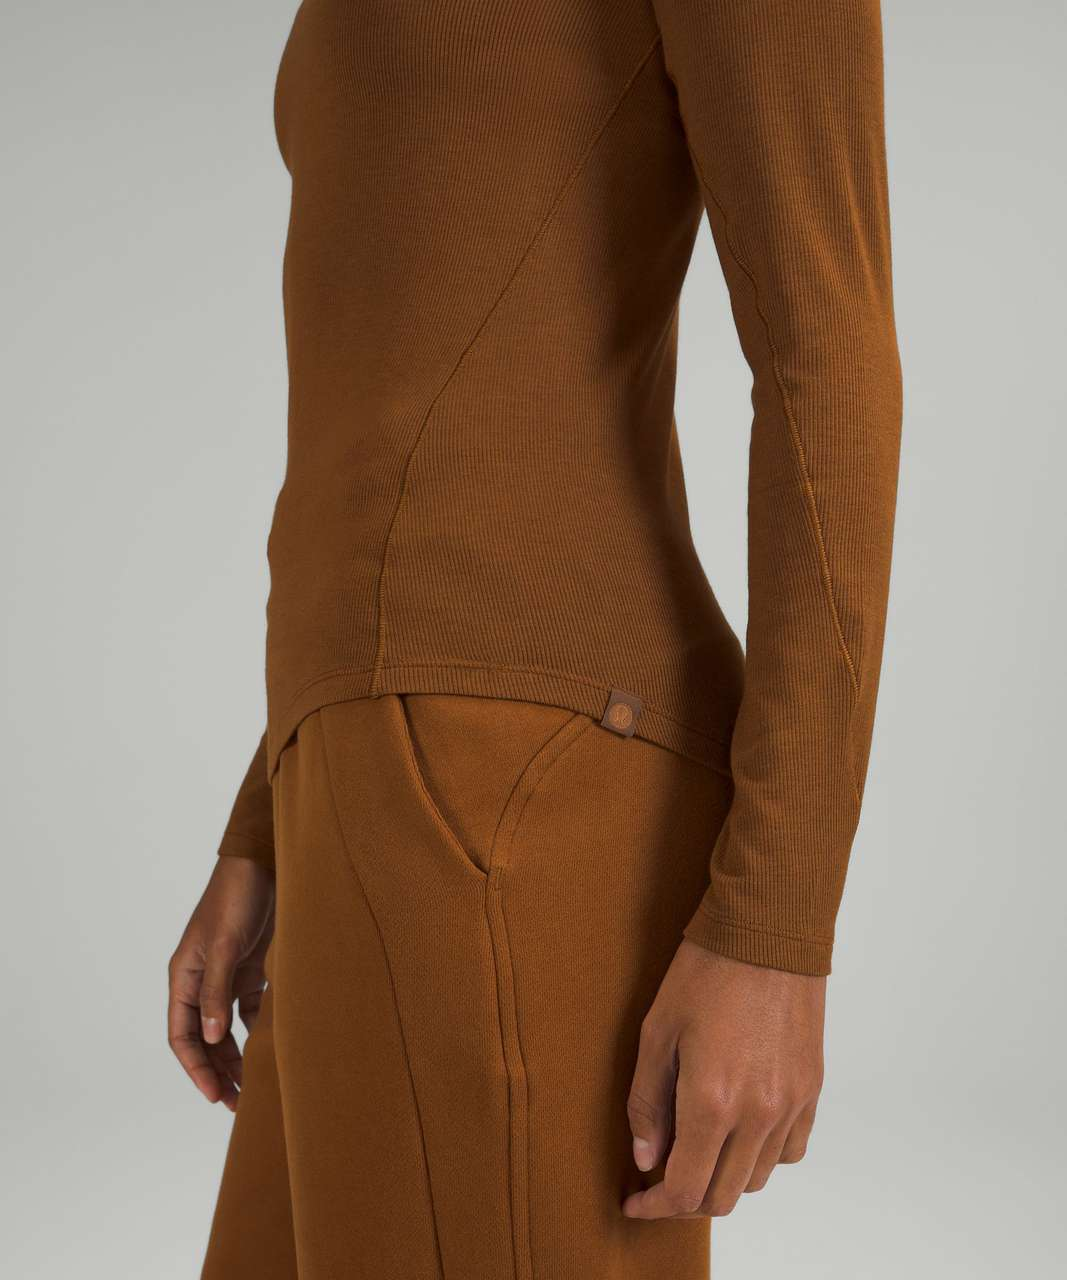 Lululemon Hold Tight Ribbed Long Sleeve Shirt - Copper Brown